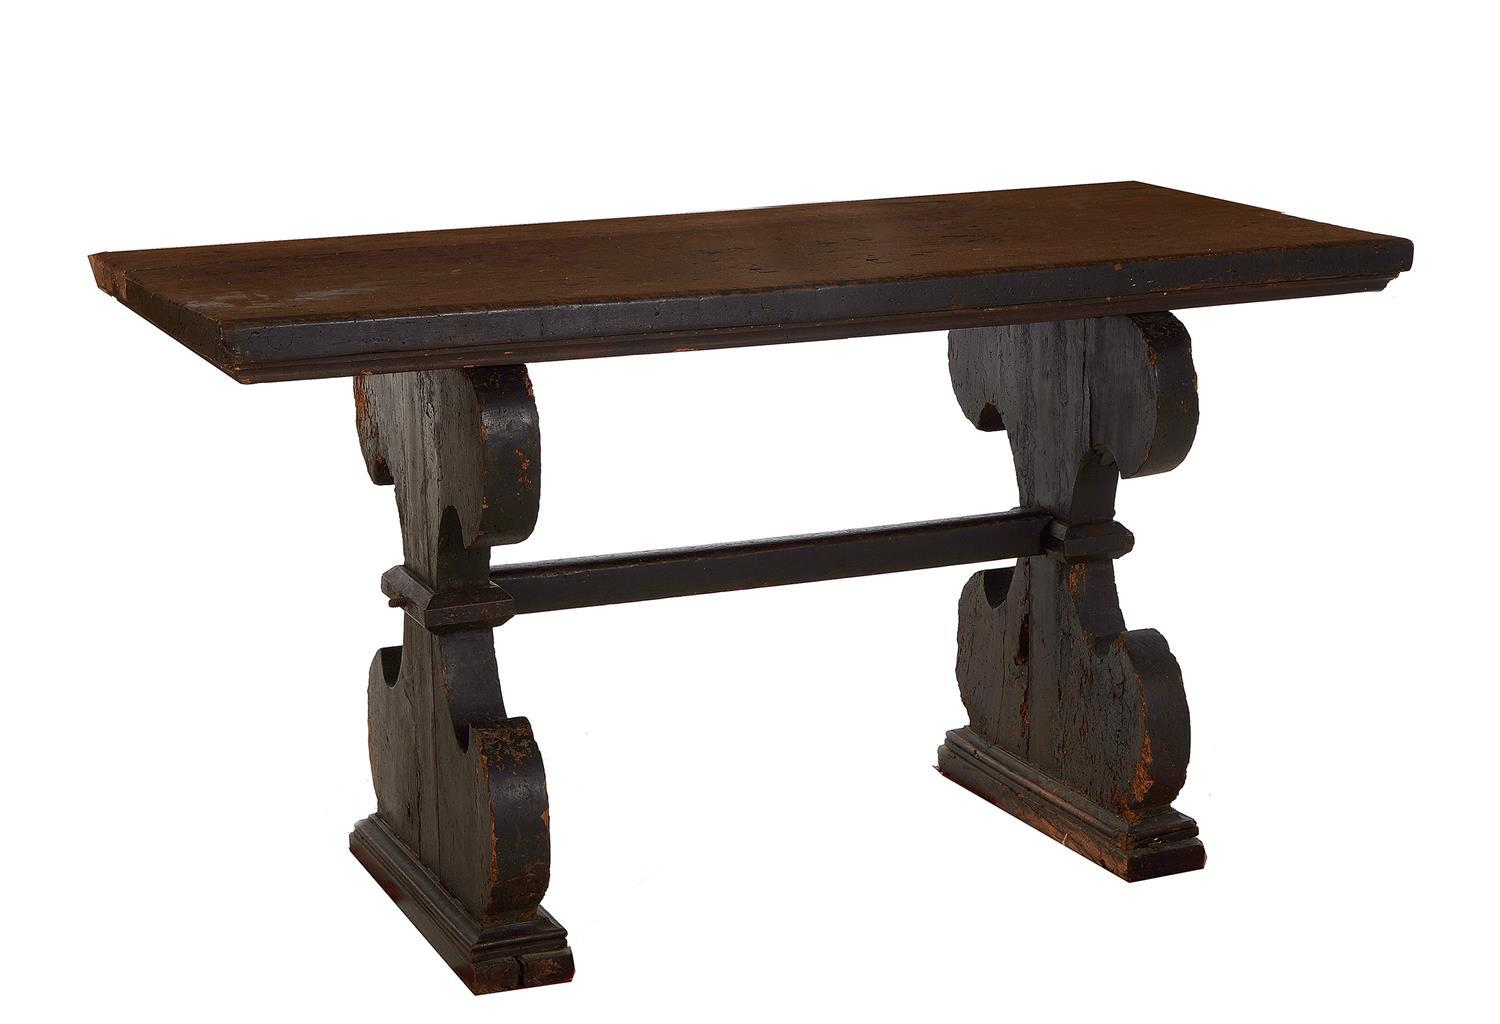 Spanish Baroque walnut trestle table